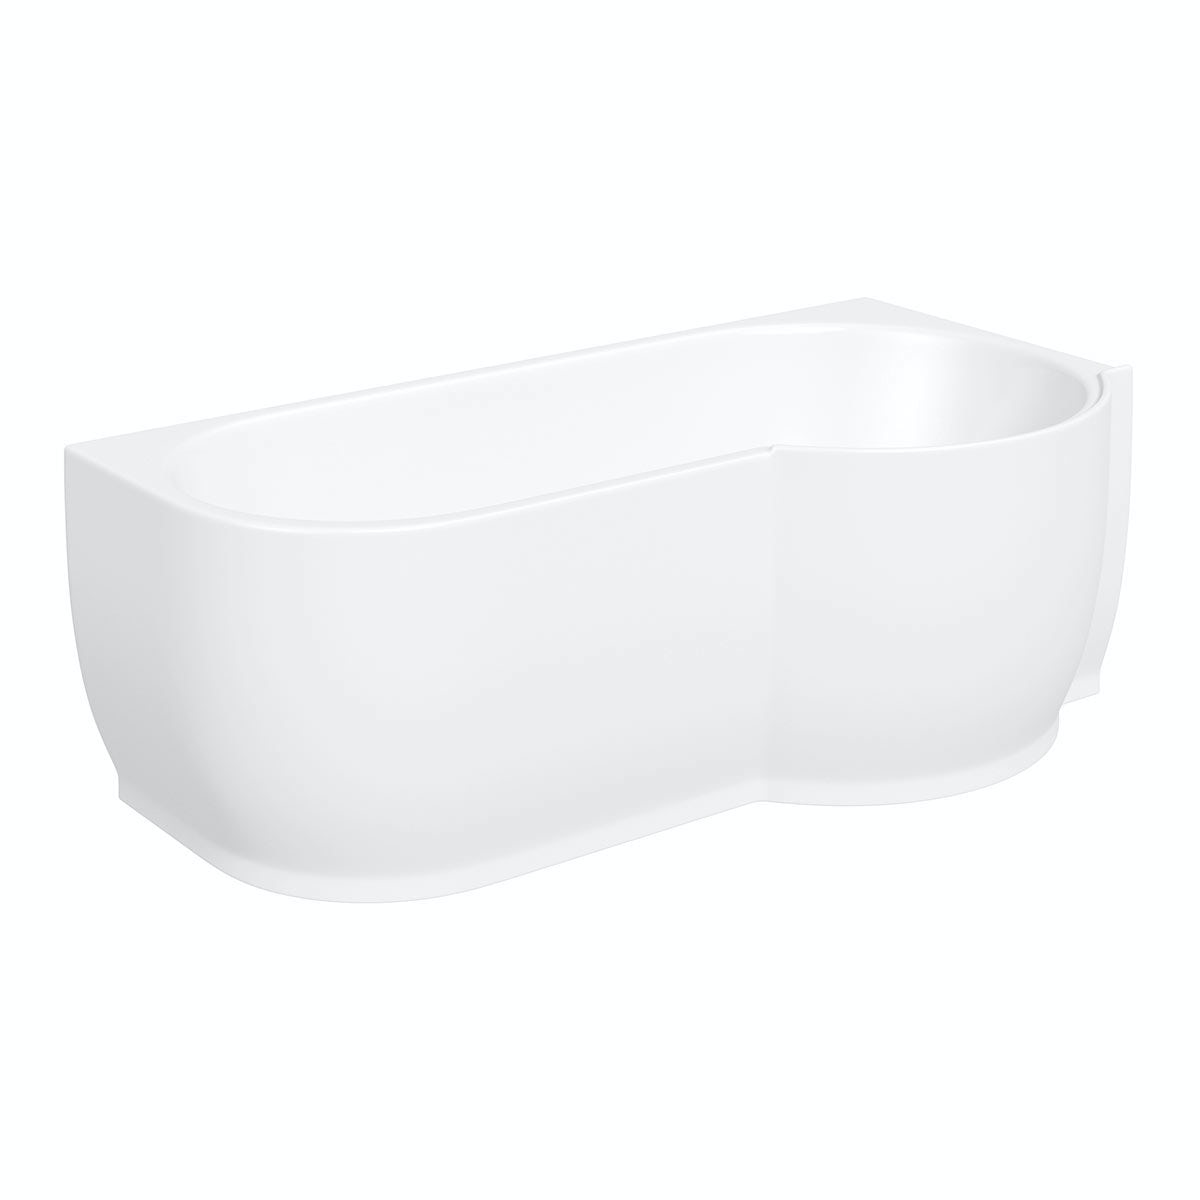 Mode Maine Right Handed P Shaped Shower Bath And Shower